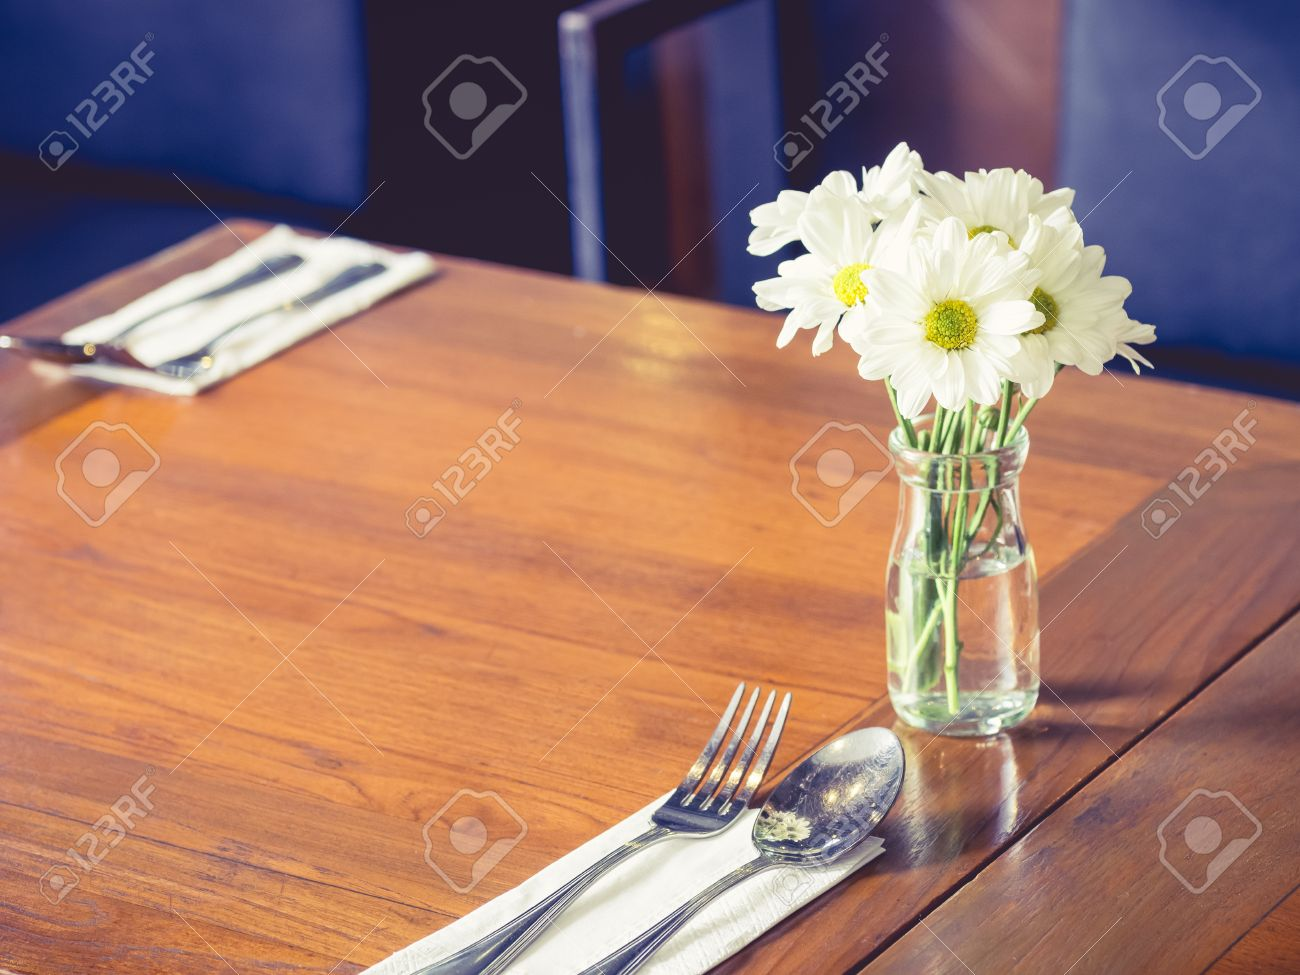 cafe restaurant table with white flower decoration stock photo